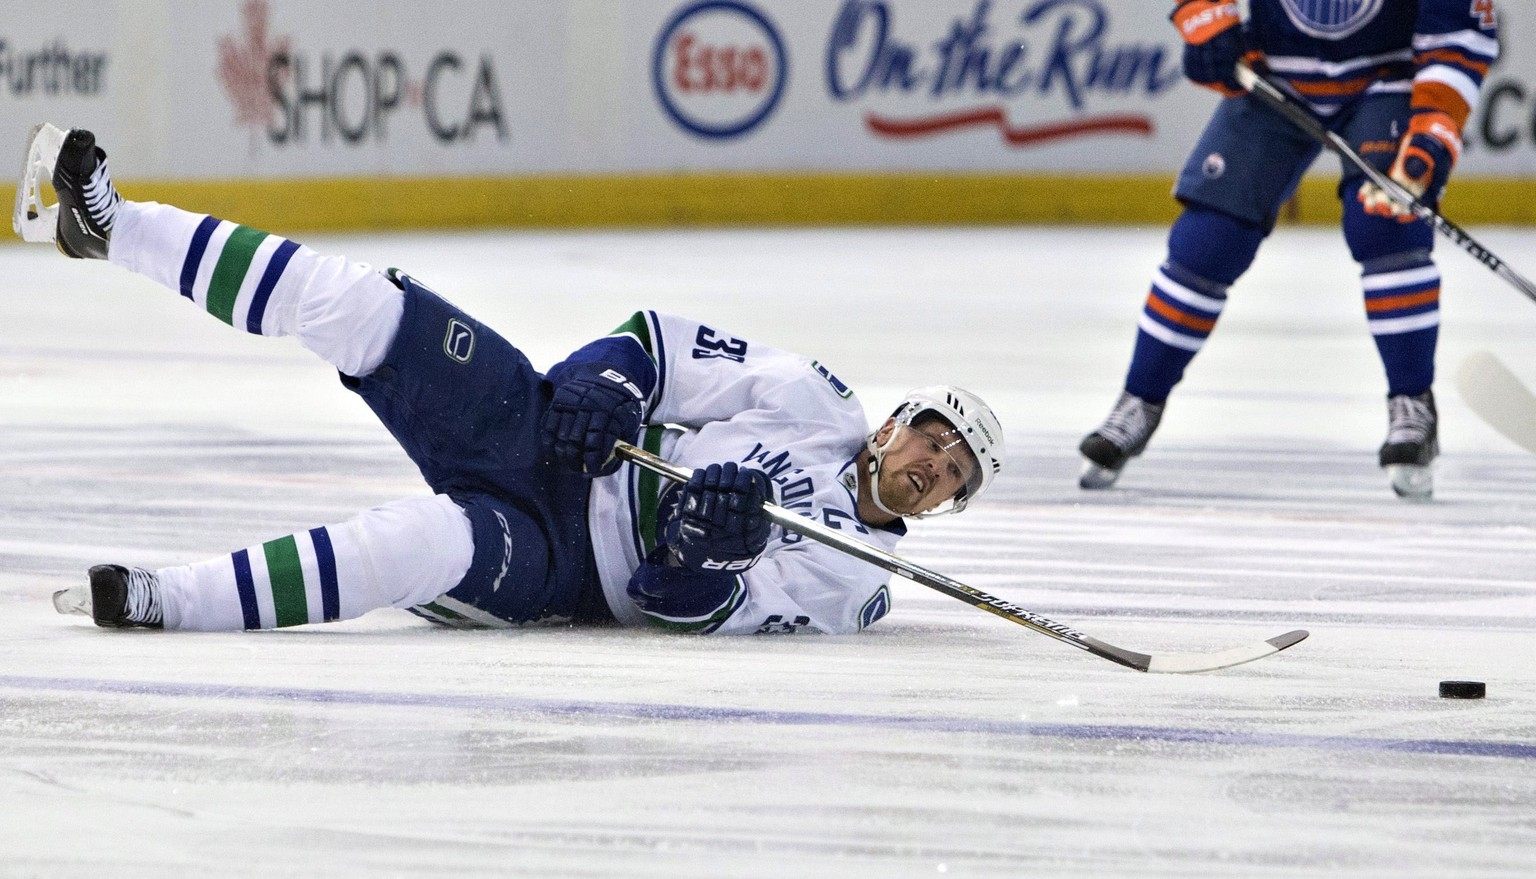 Vancouver Canucks' Henrik Sedin (33) falls as he goes for the puck against the Edmonton Oilers during the first period of an NHL hockey game Wednesday, Nov. 19, 2014, in Edmonton, Alberta. (AP Photo/The Canadian Press, Jason Franson)